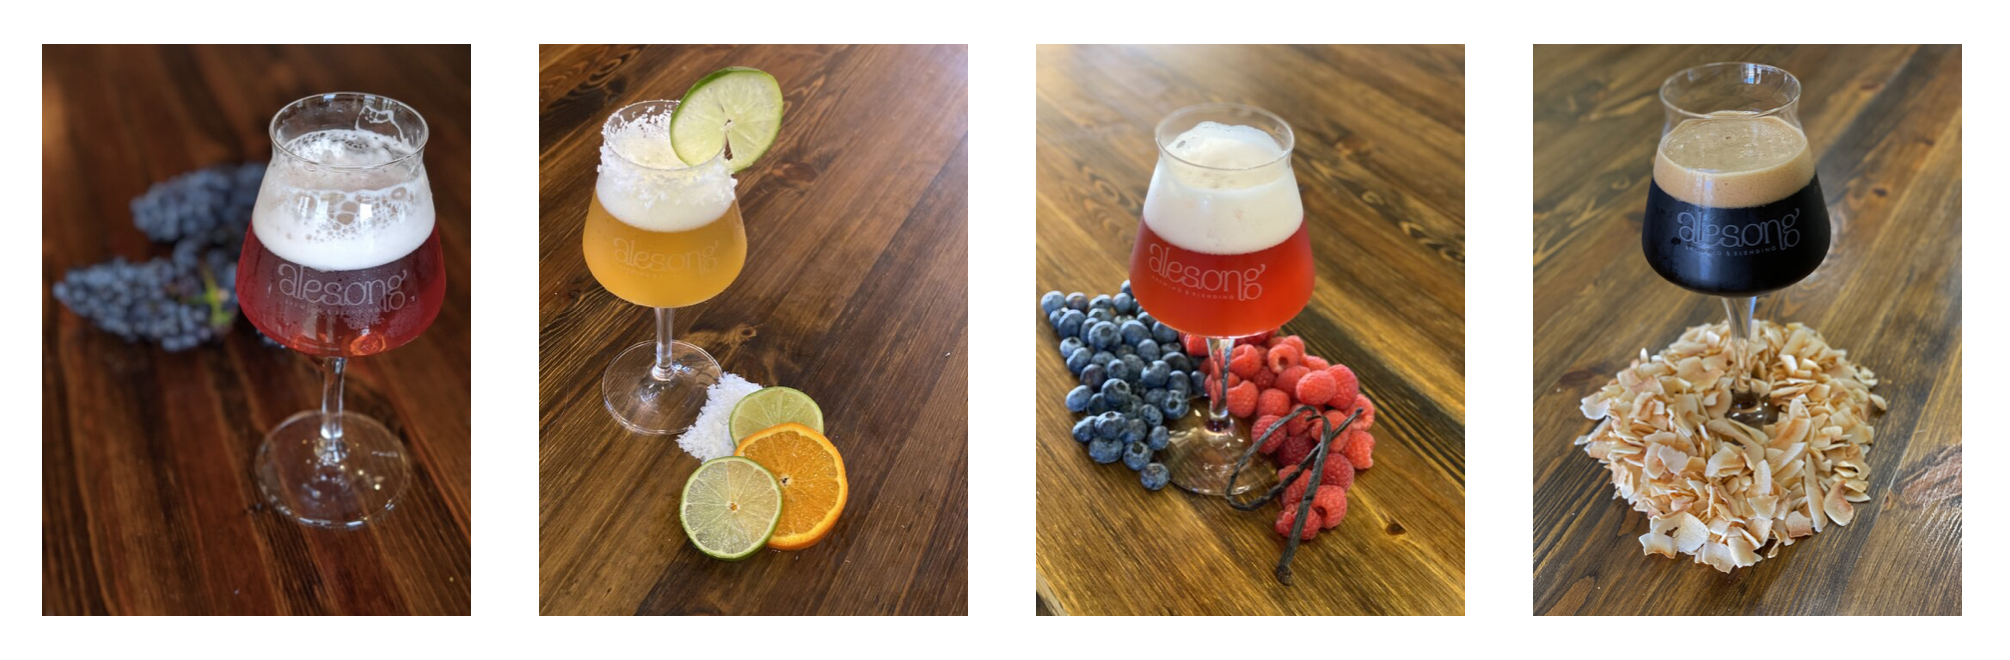 August 2020 beer releases from Alesong Brewing & Blending - Raindrops on Roses, Gose Añejo, Magic is Real, and Coconut Rhino Suit. (image courtesy of Alesong Brewing & Blending).JPG